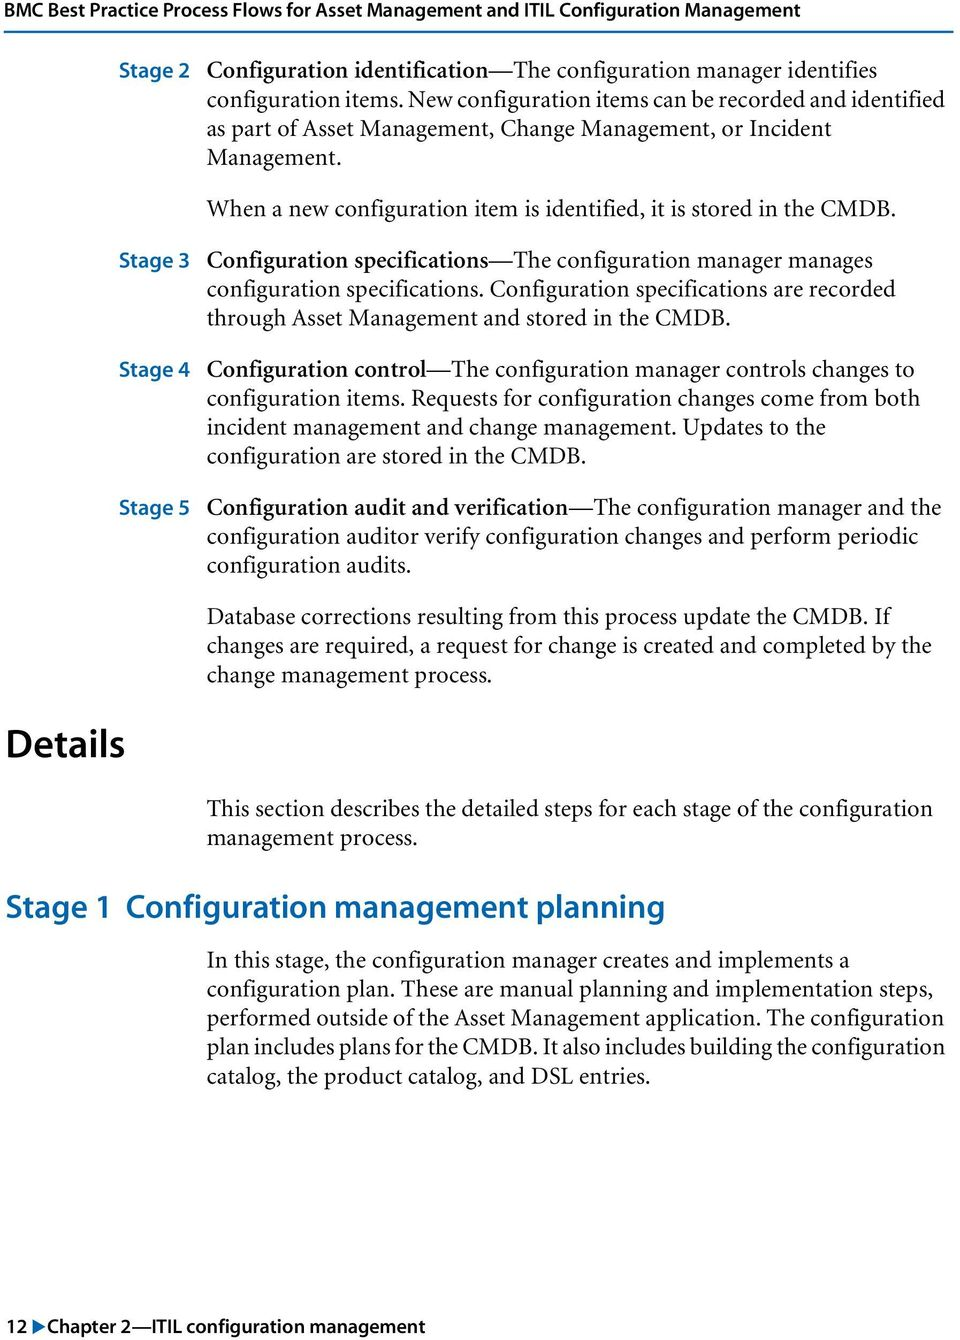 Stage 3 Stage 4 Stage 5 Configuration specifications The configuration manager manages configuration specifications. Configuration specifications are recorded through Asset and stored in the CMDB.